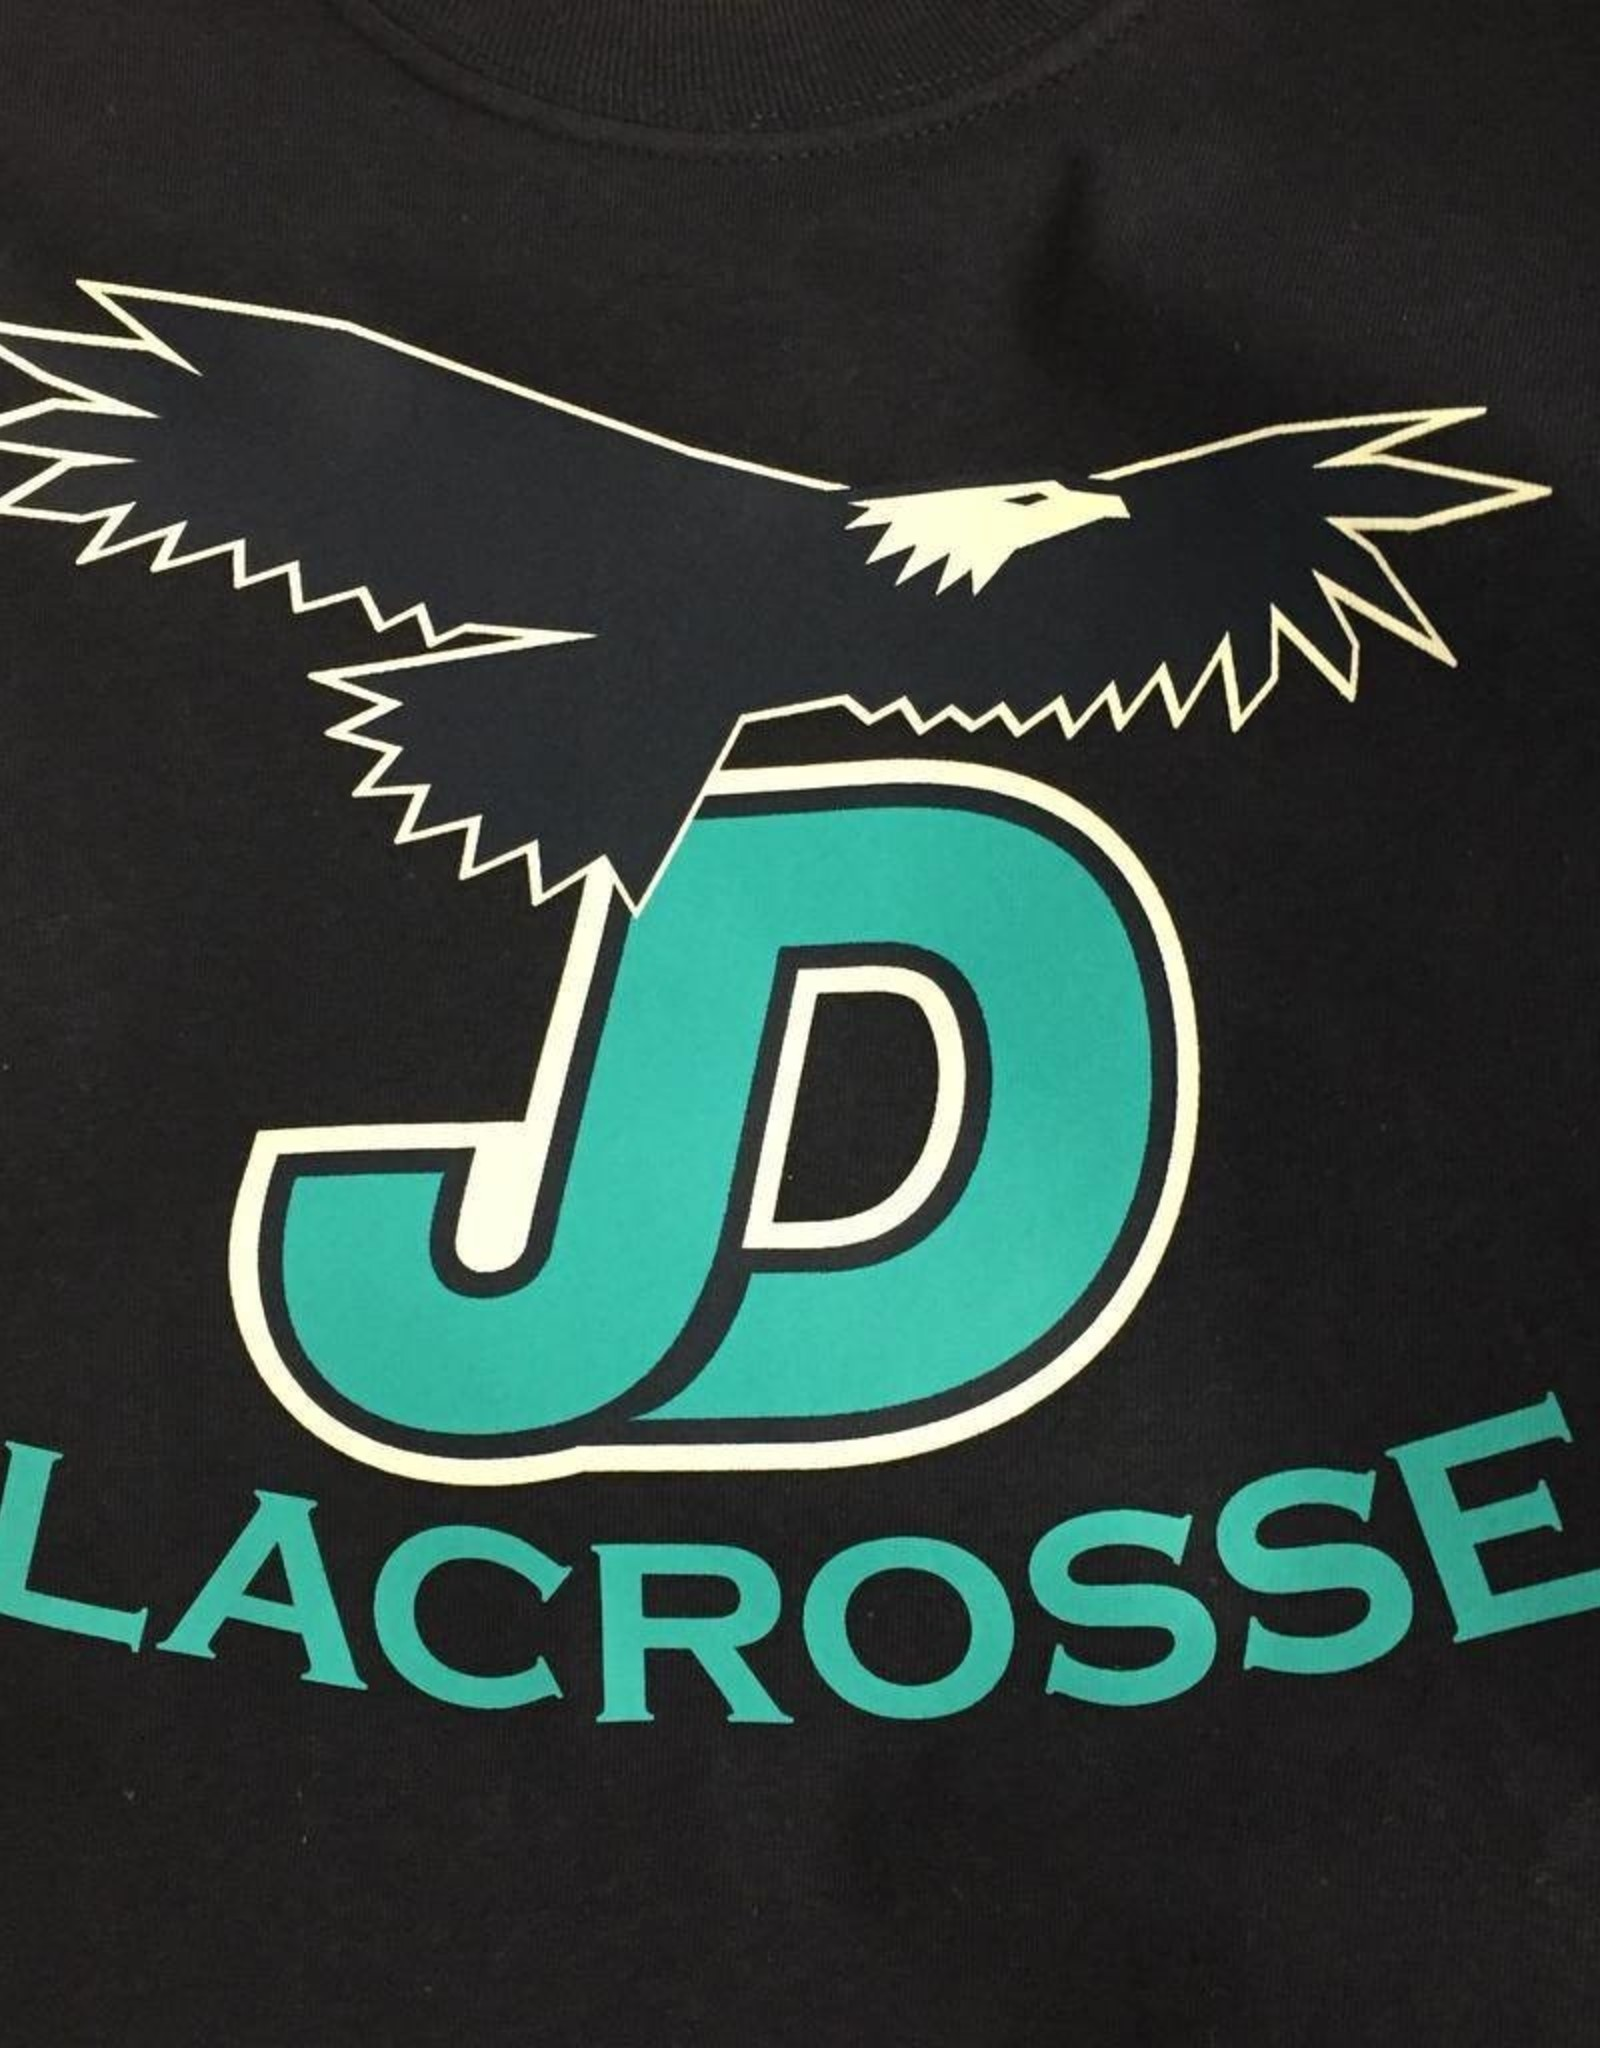 NON-UNIFORM JD Lacrosse Unisex T-shirt, Navy